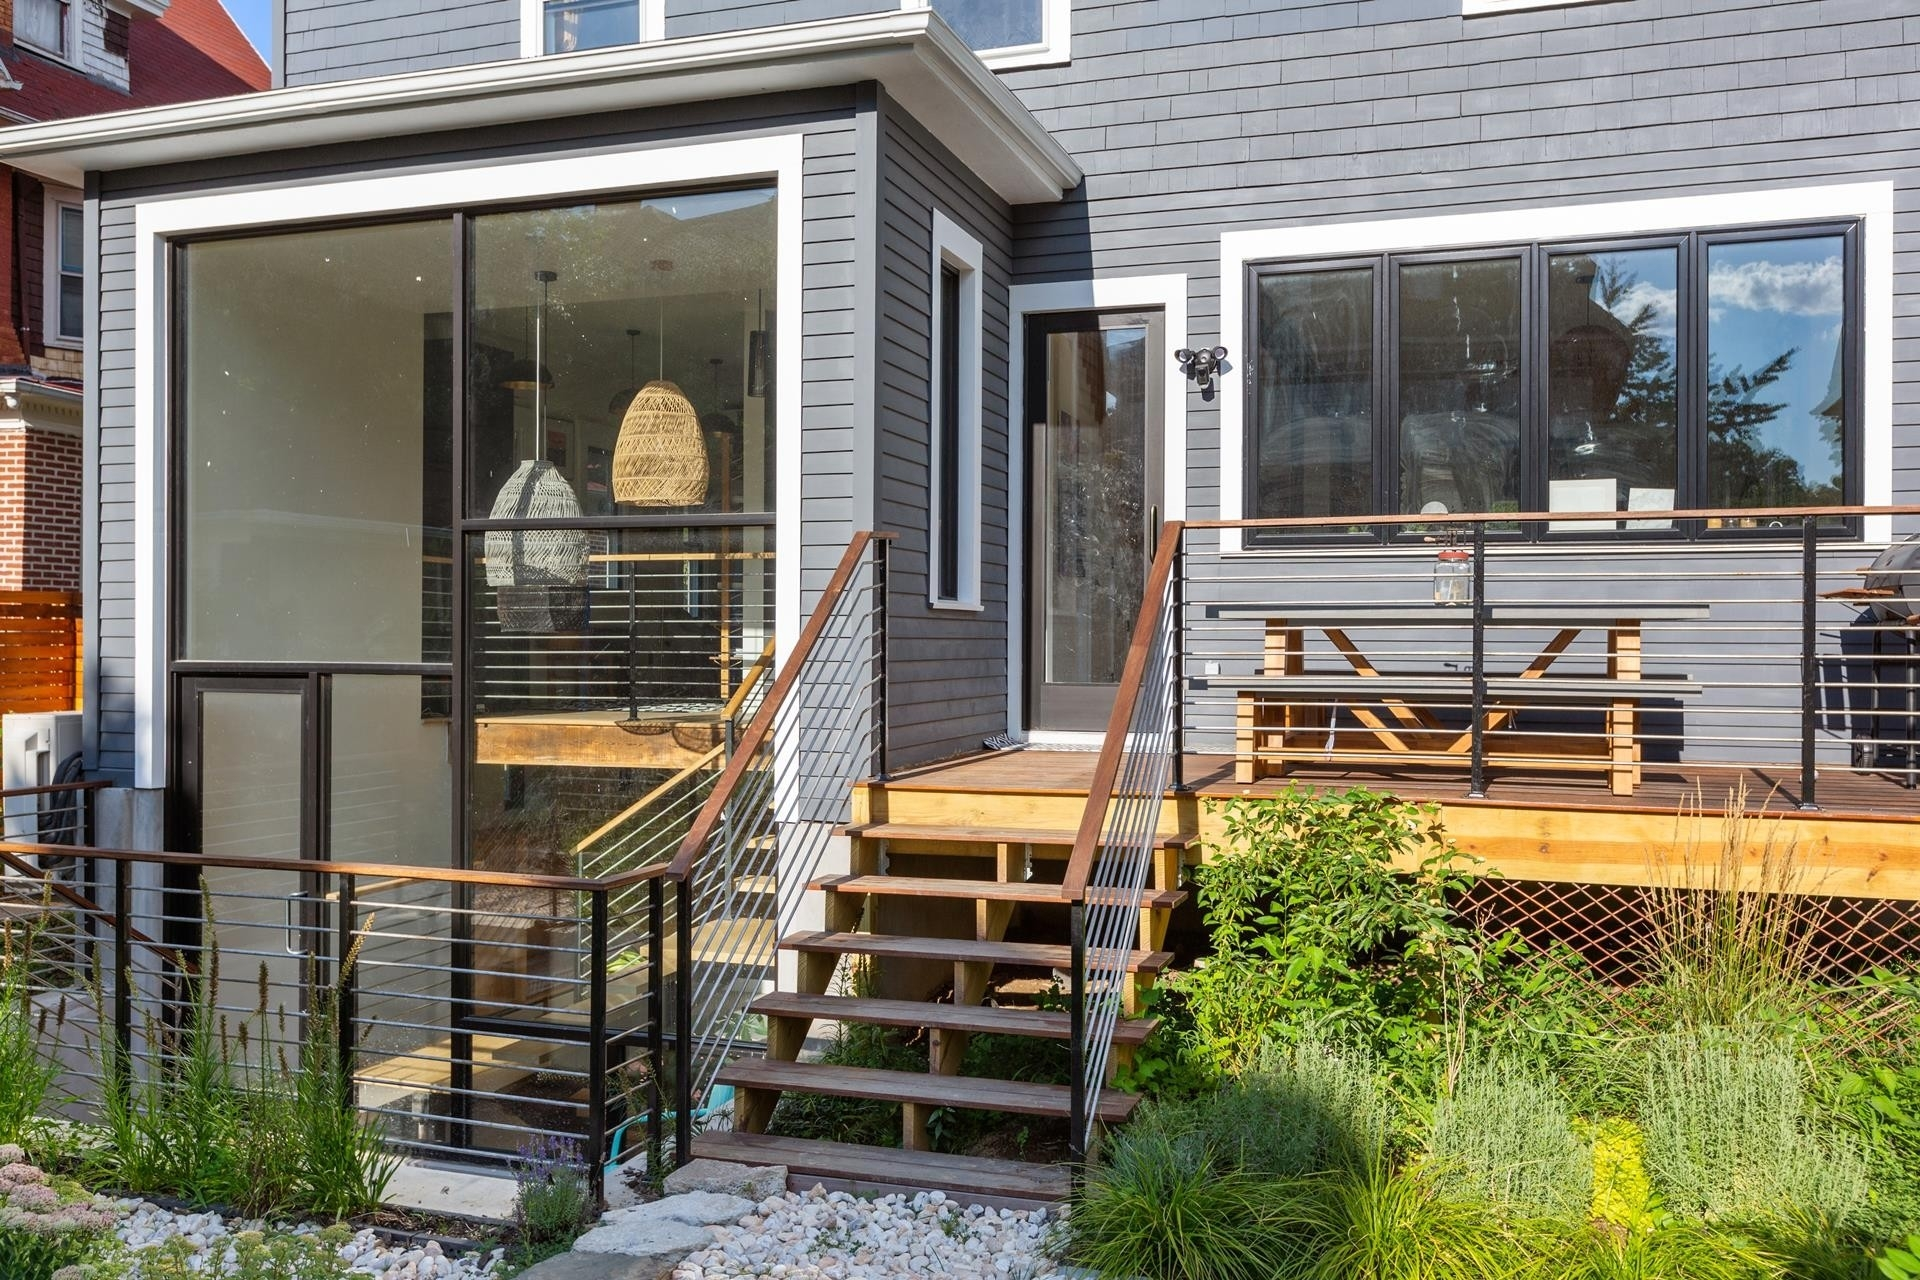 31. Single Family Townhouse for Sale at Ditmas Park, Brooklyn, NY 11226